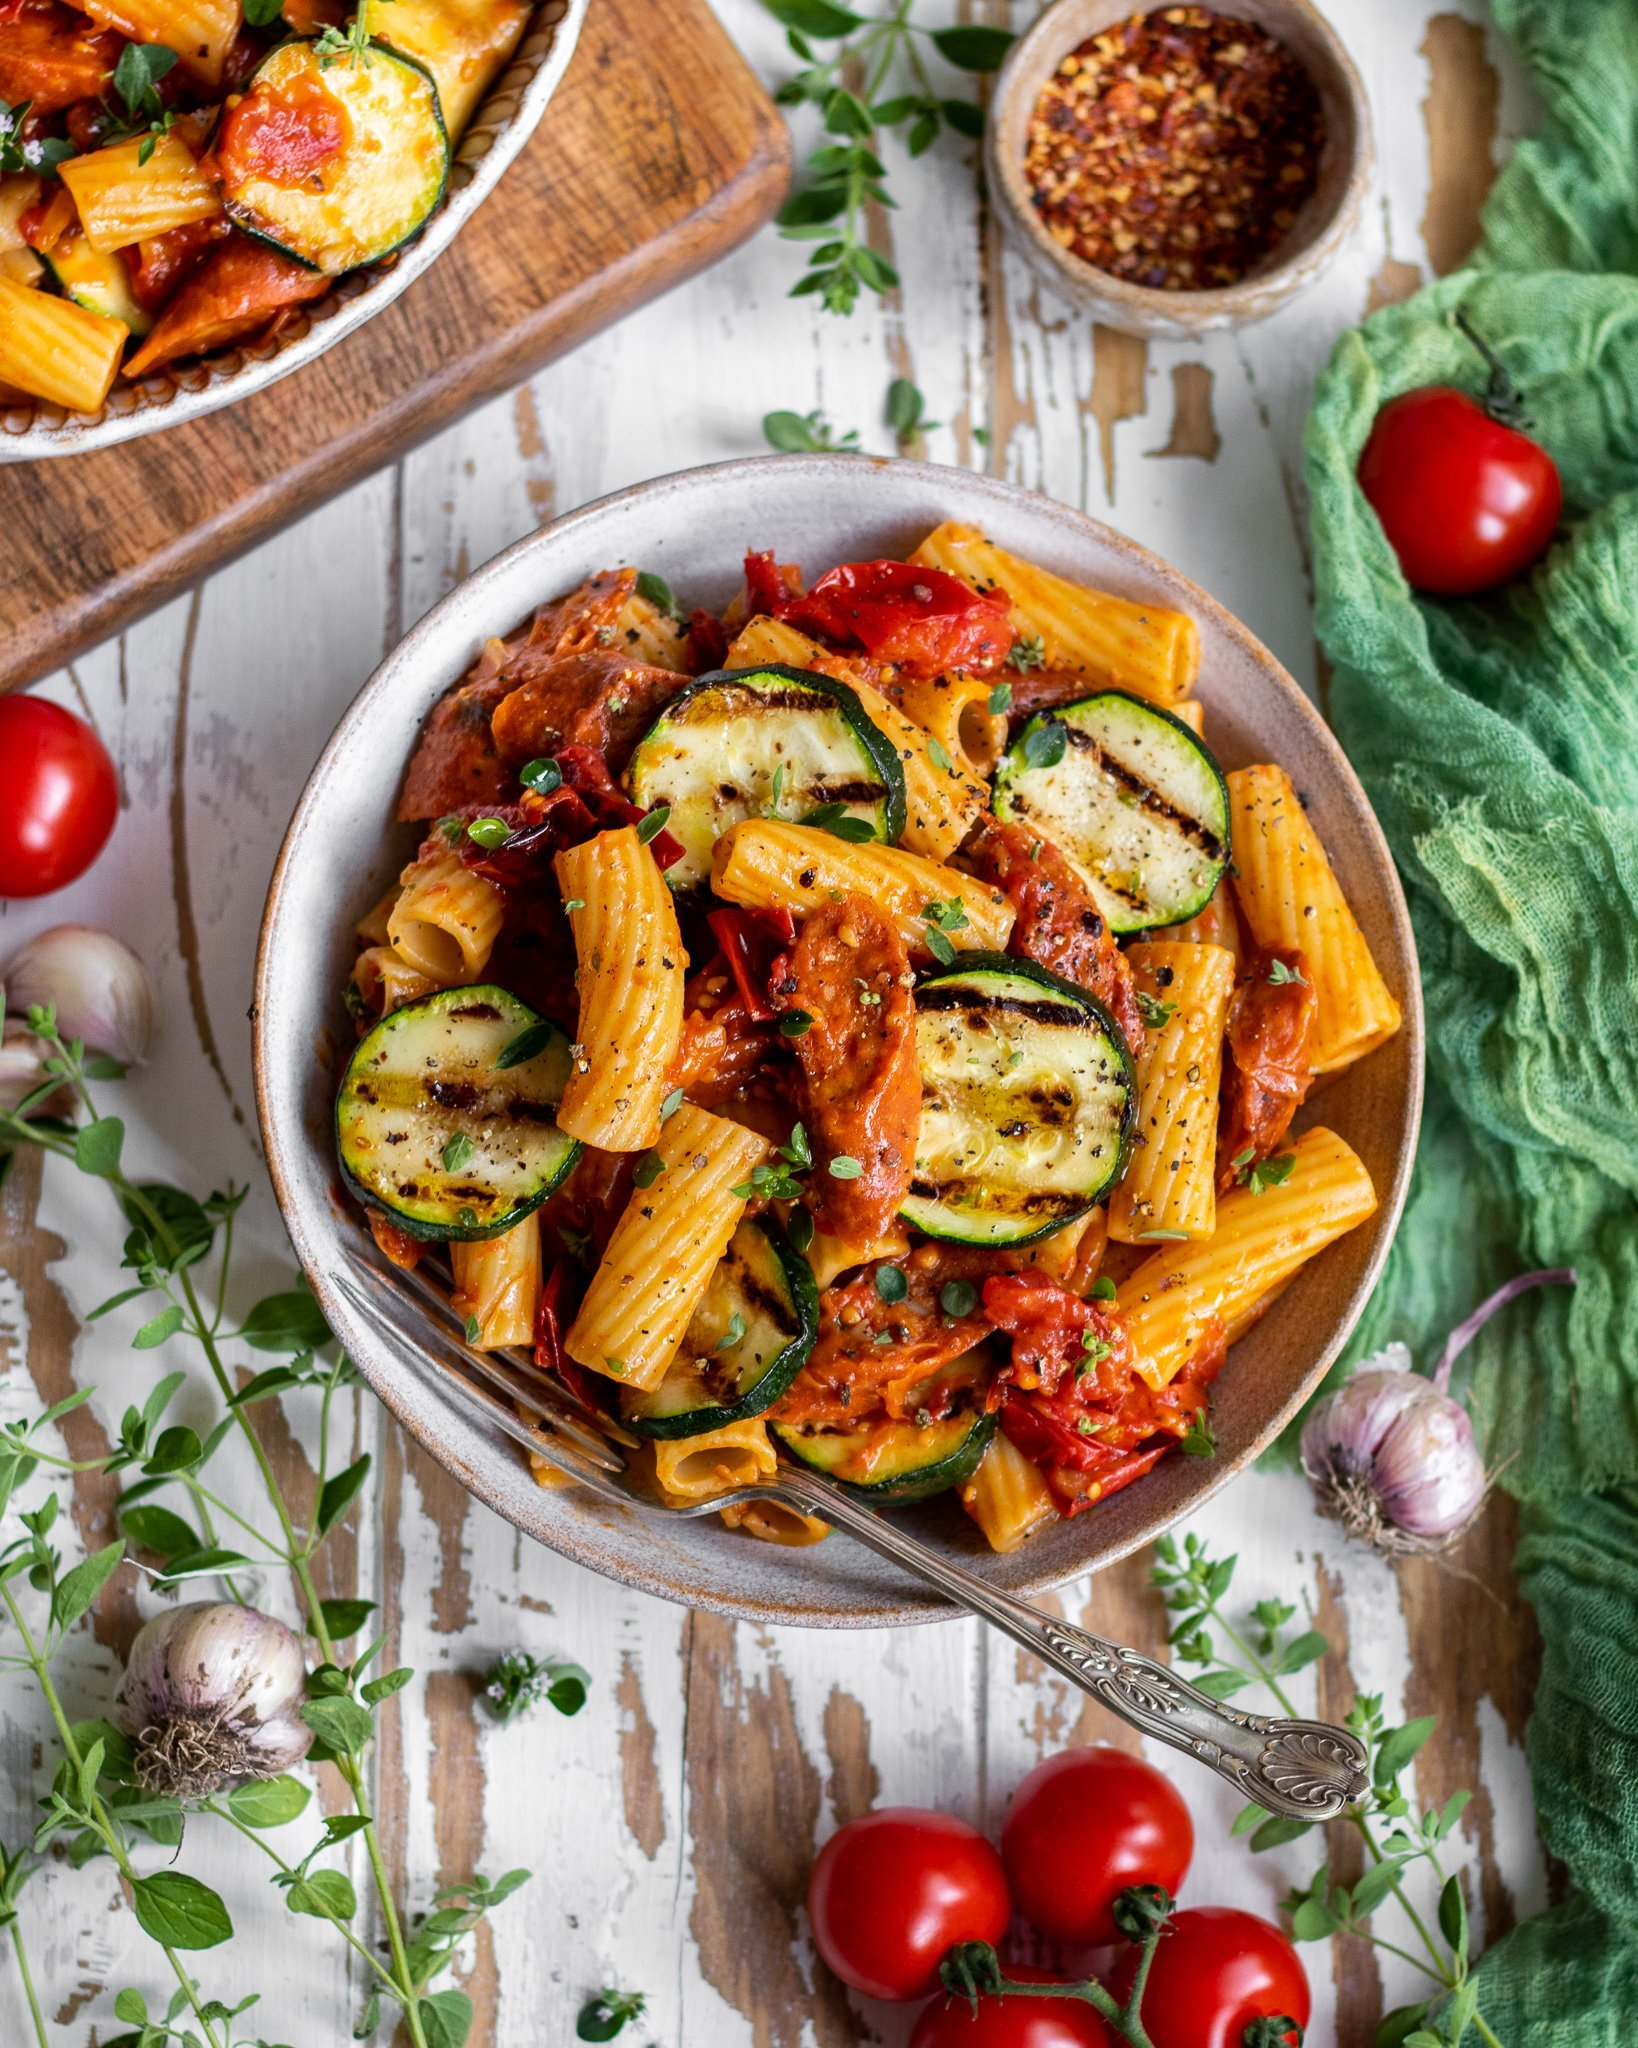 Oven Roasted Tomato & Courgette Pasta